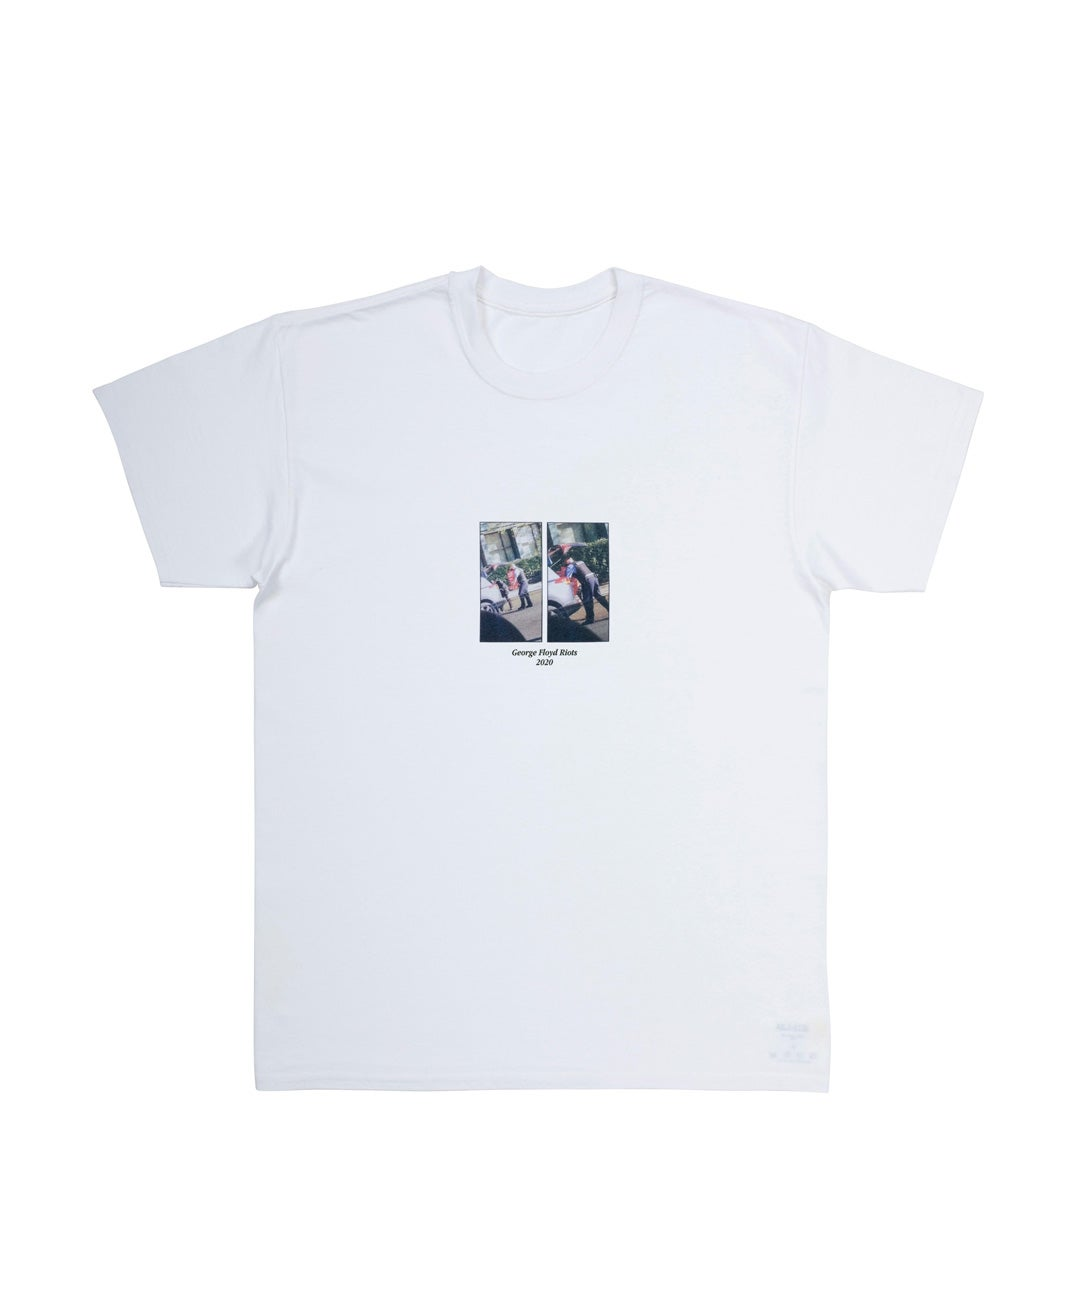 Image of Charity T-Shirt